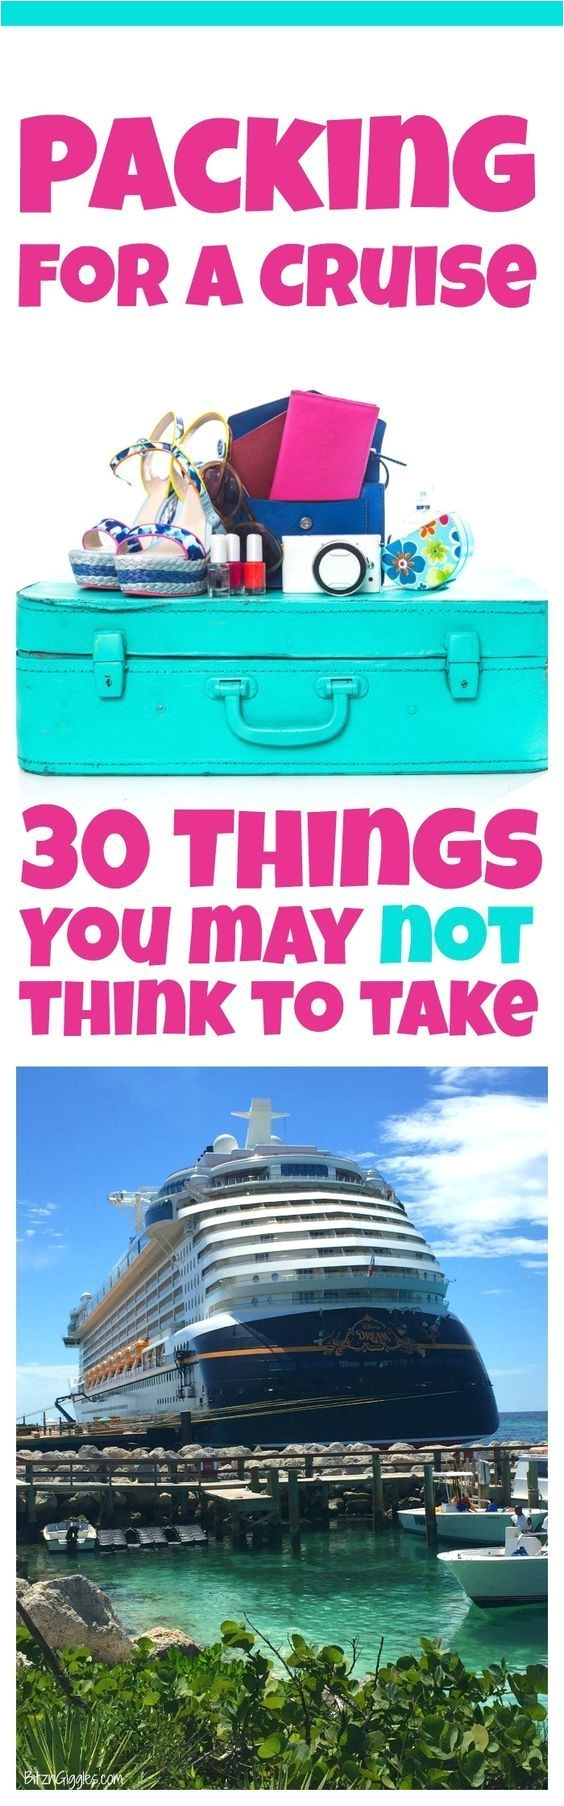 packing for a cruise 30 things you may not think to take